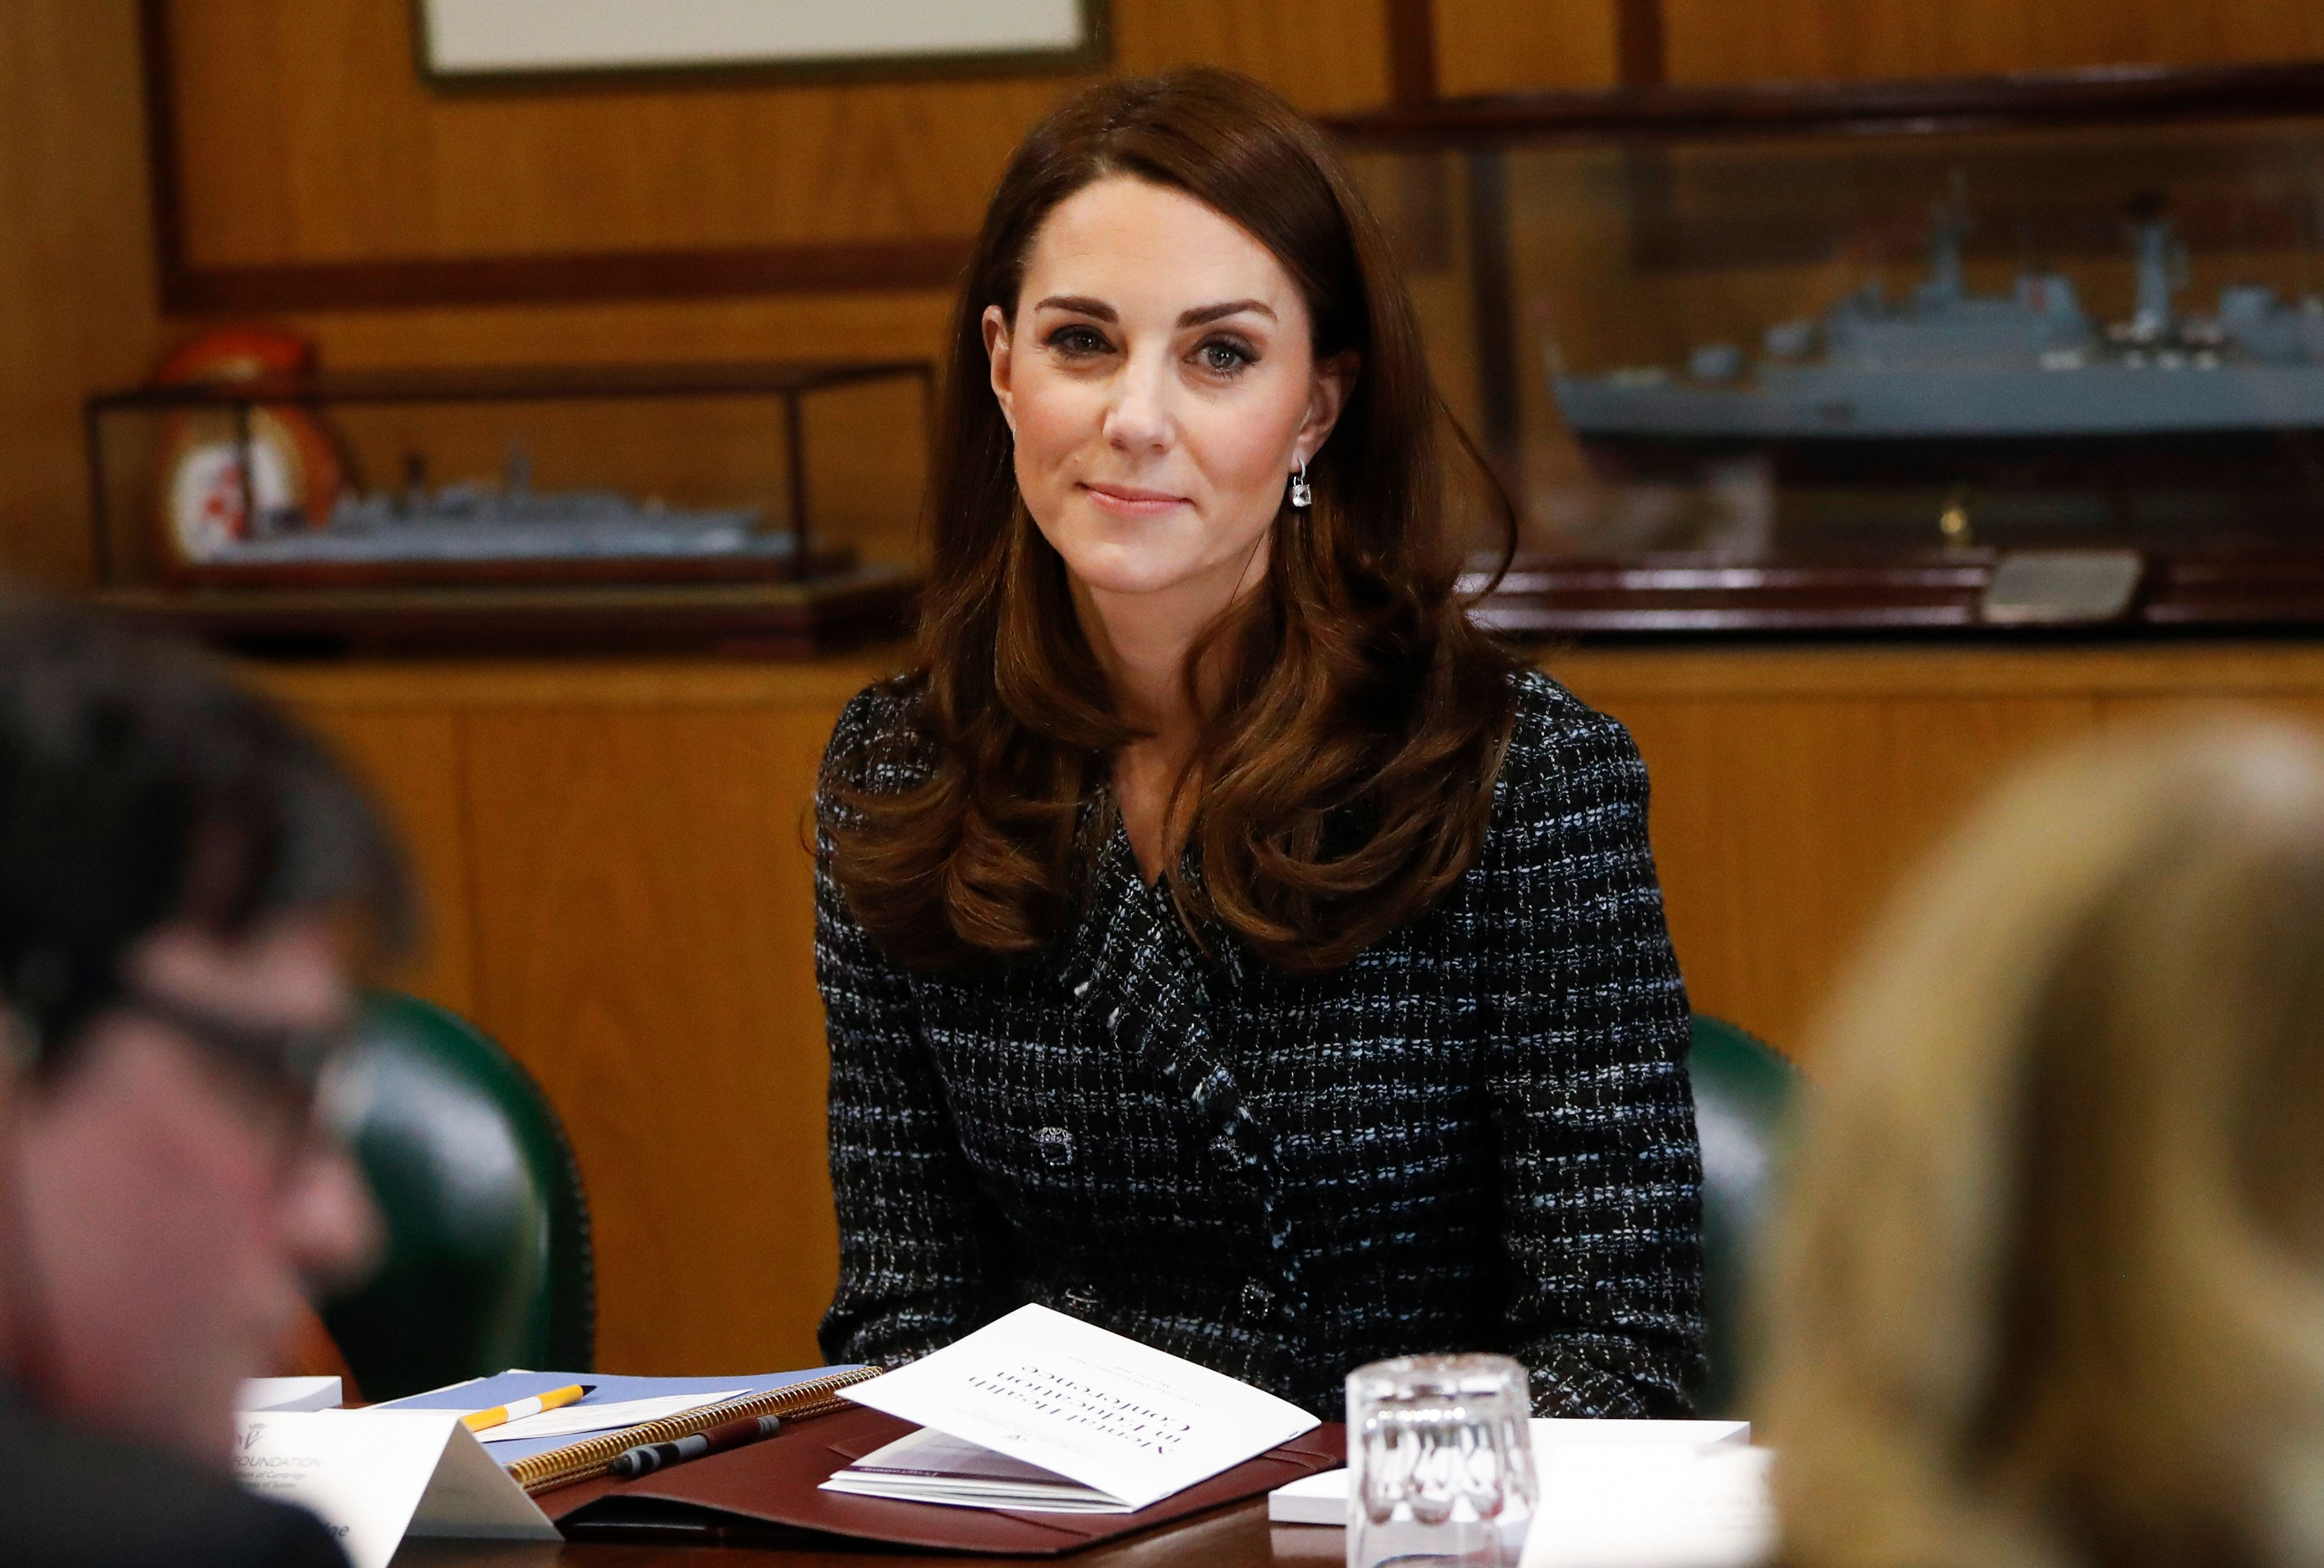 Duchess Of Cambridge: I Was 'Very Naive' As A Parent Over Children's Early